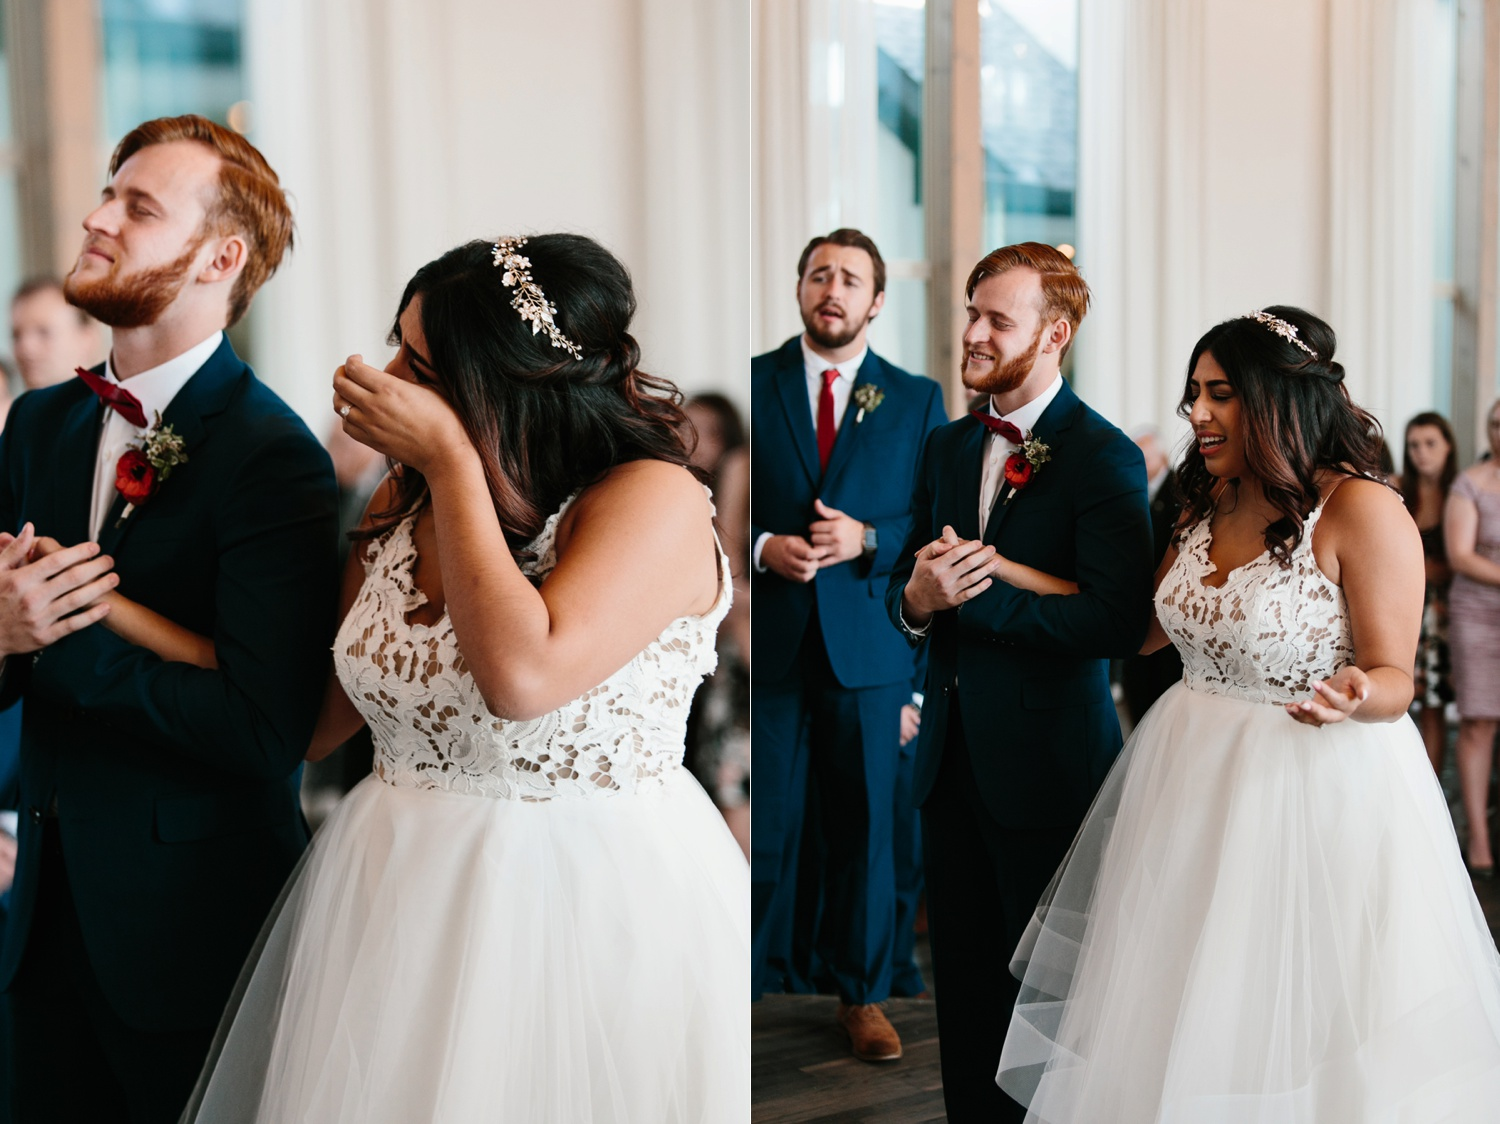 Grant + Lysette | a vibrant, deep burgundy and navy, and mixed metals wedding at Hidden Pines Chapel by North Texas Wedding Photographer Rachel Meagan Photography 069